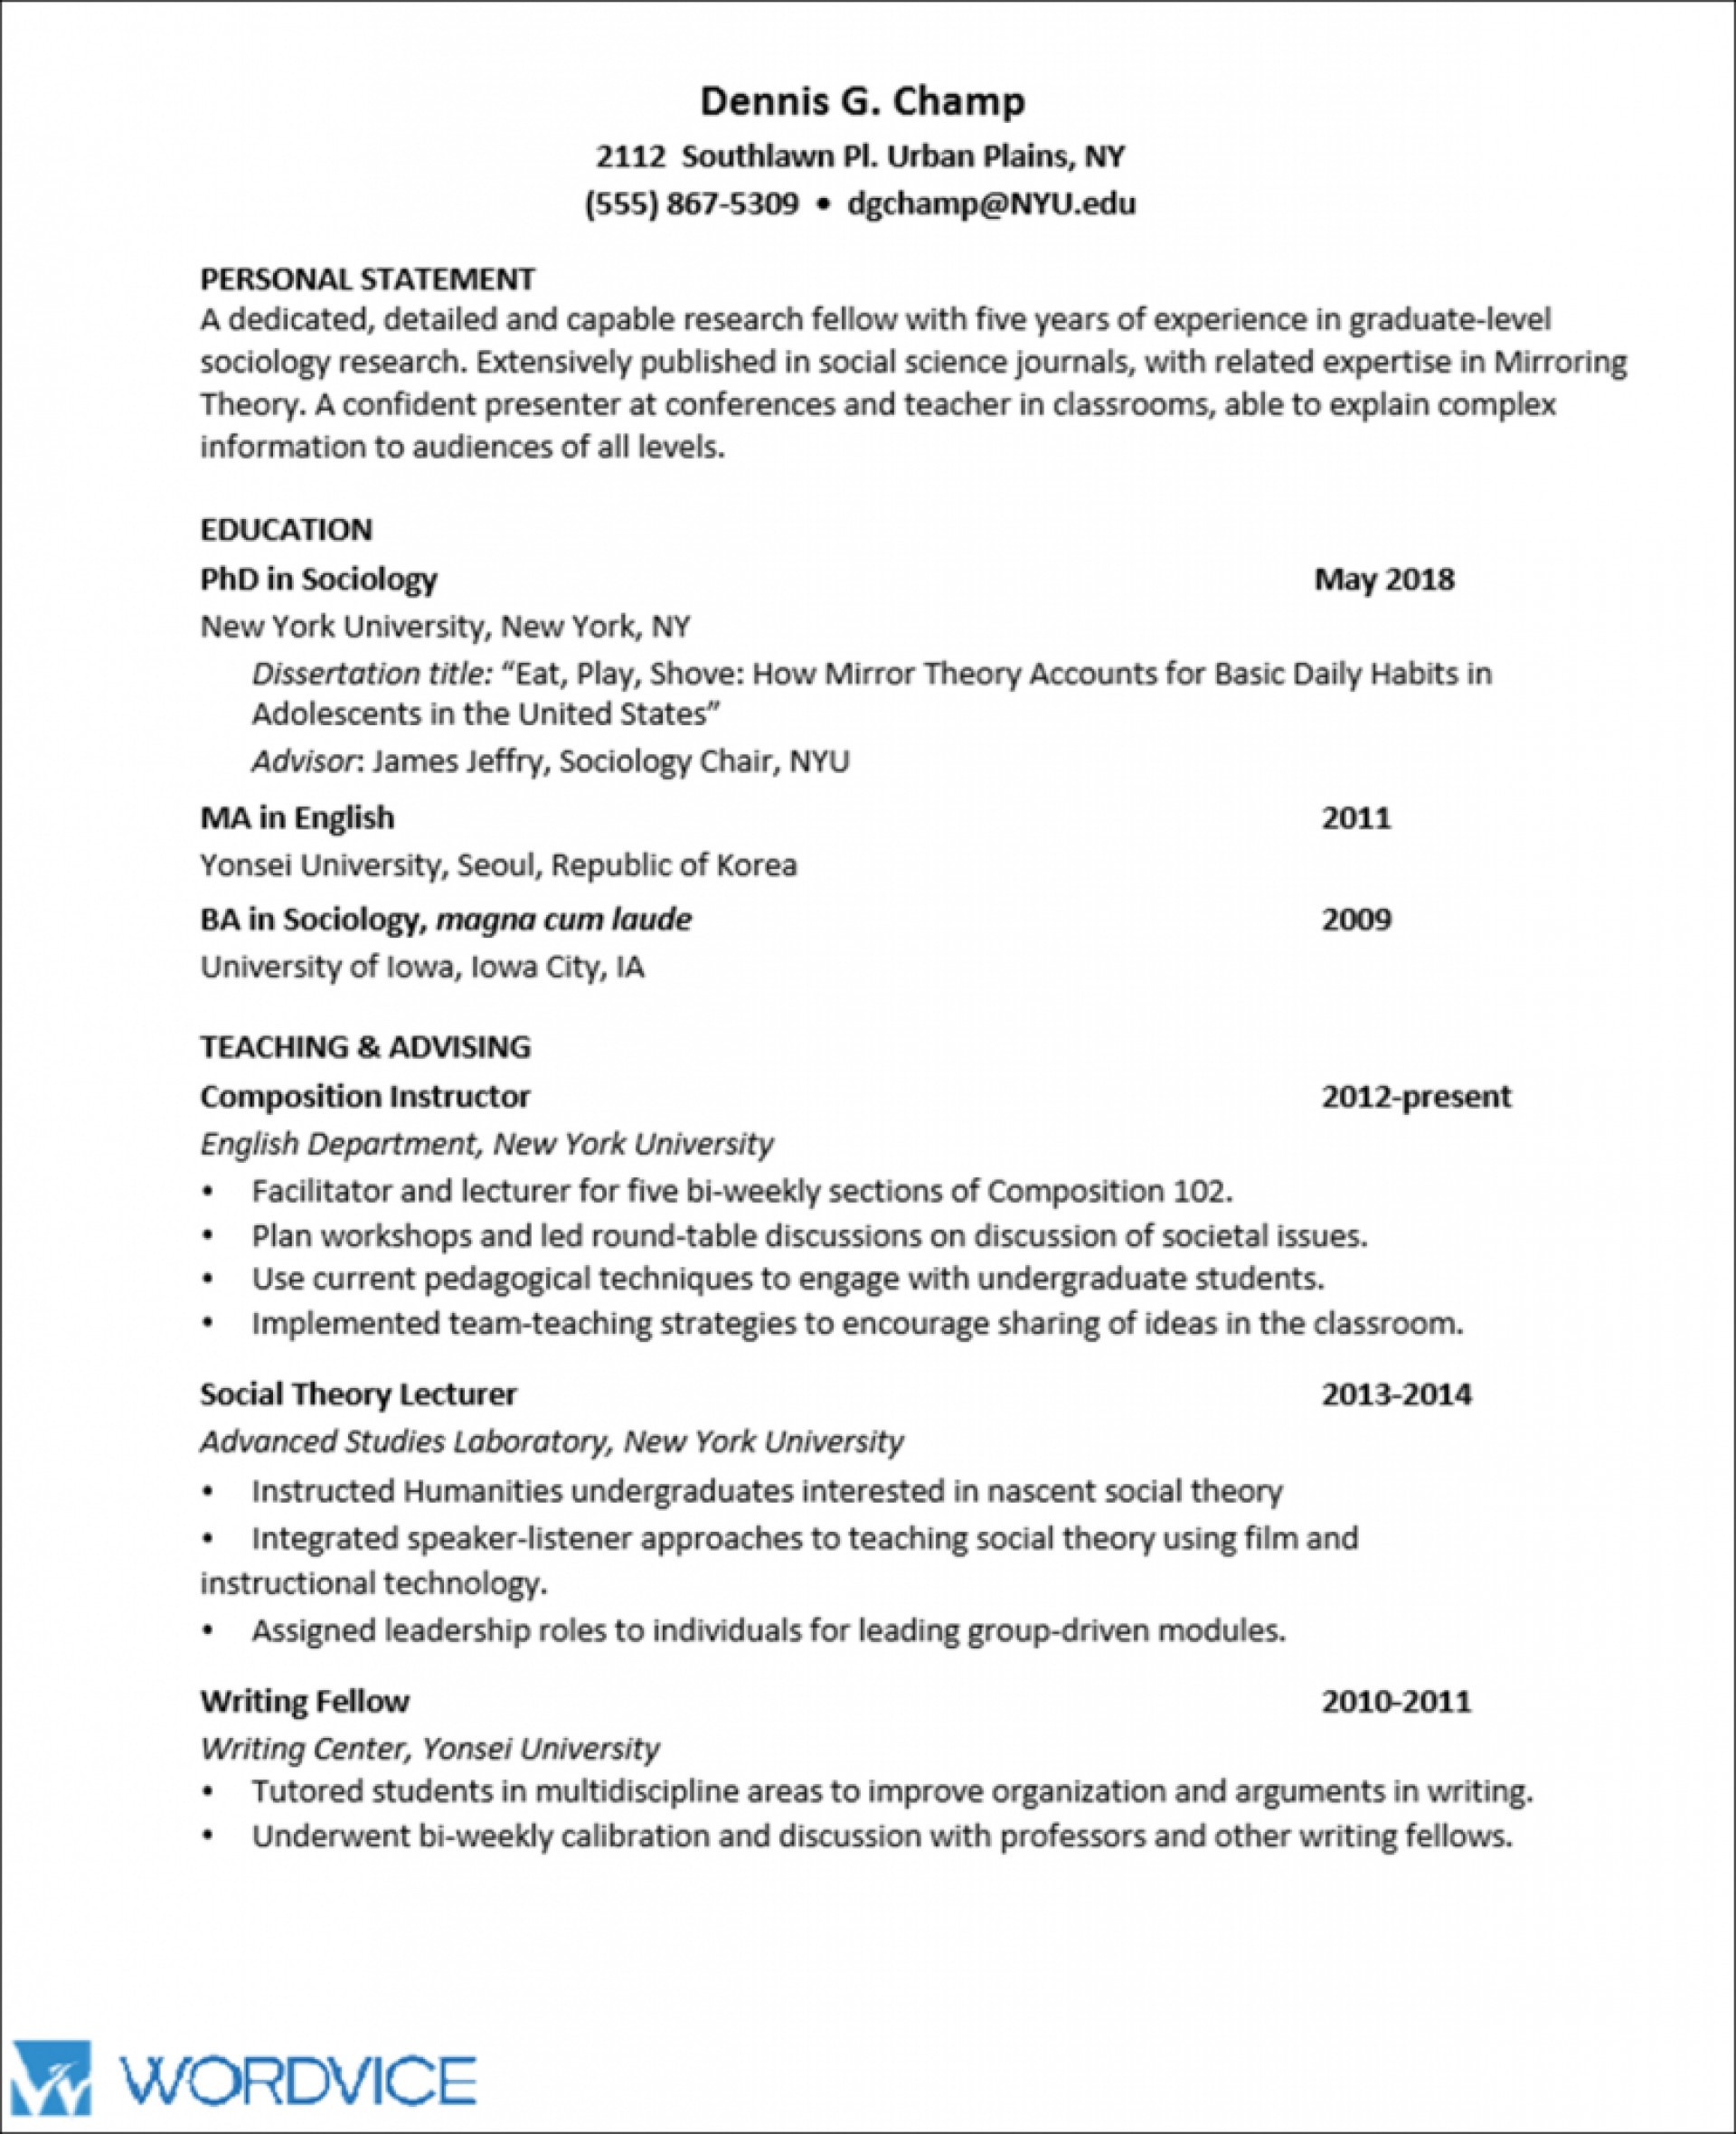 009 Research Paper Academic Cv Graphic2 833x1024 Career Introduction Exceptional Example Sample Paragraph 1920